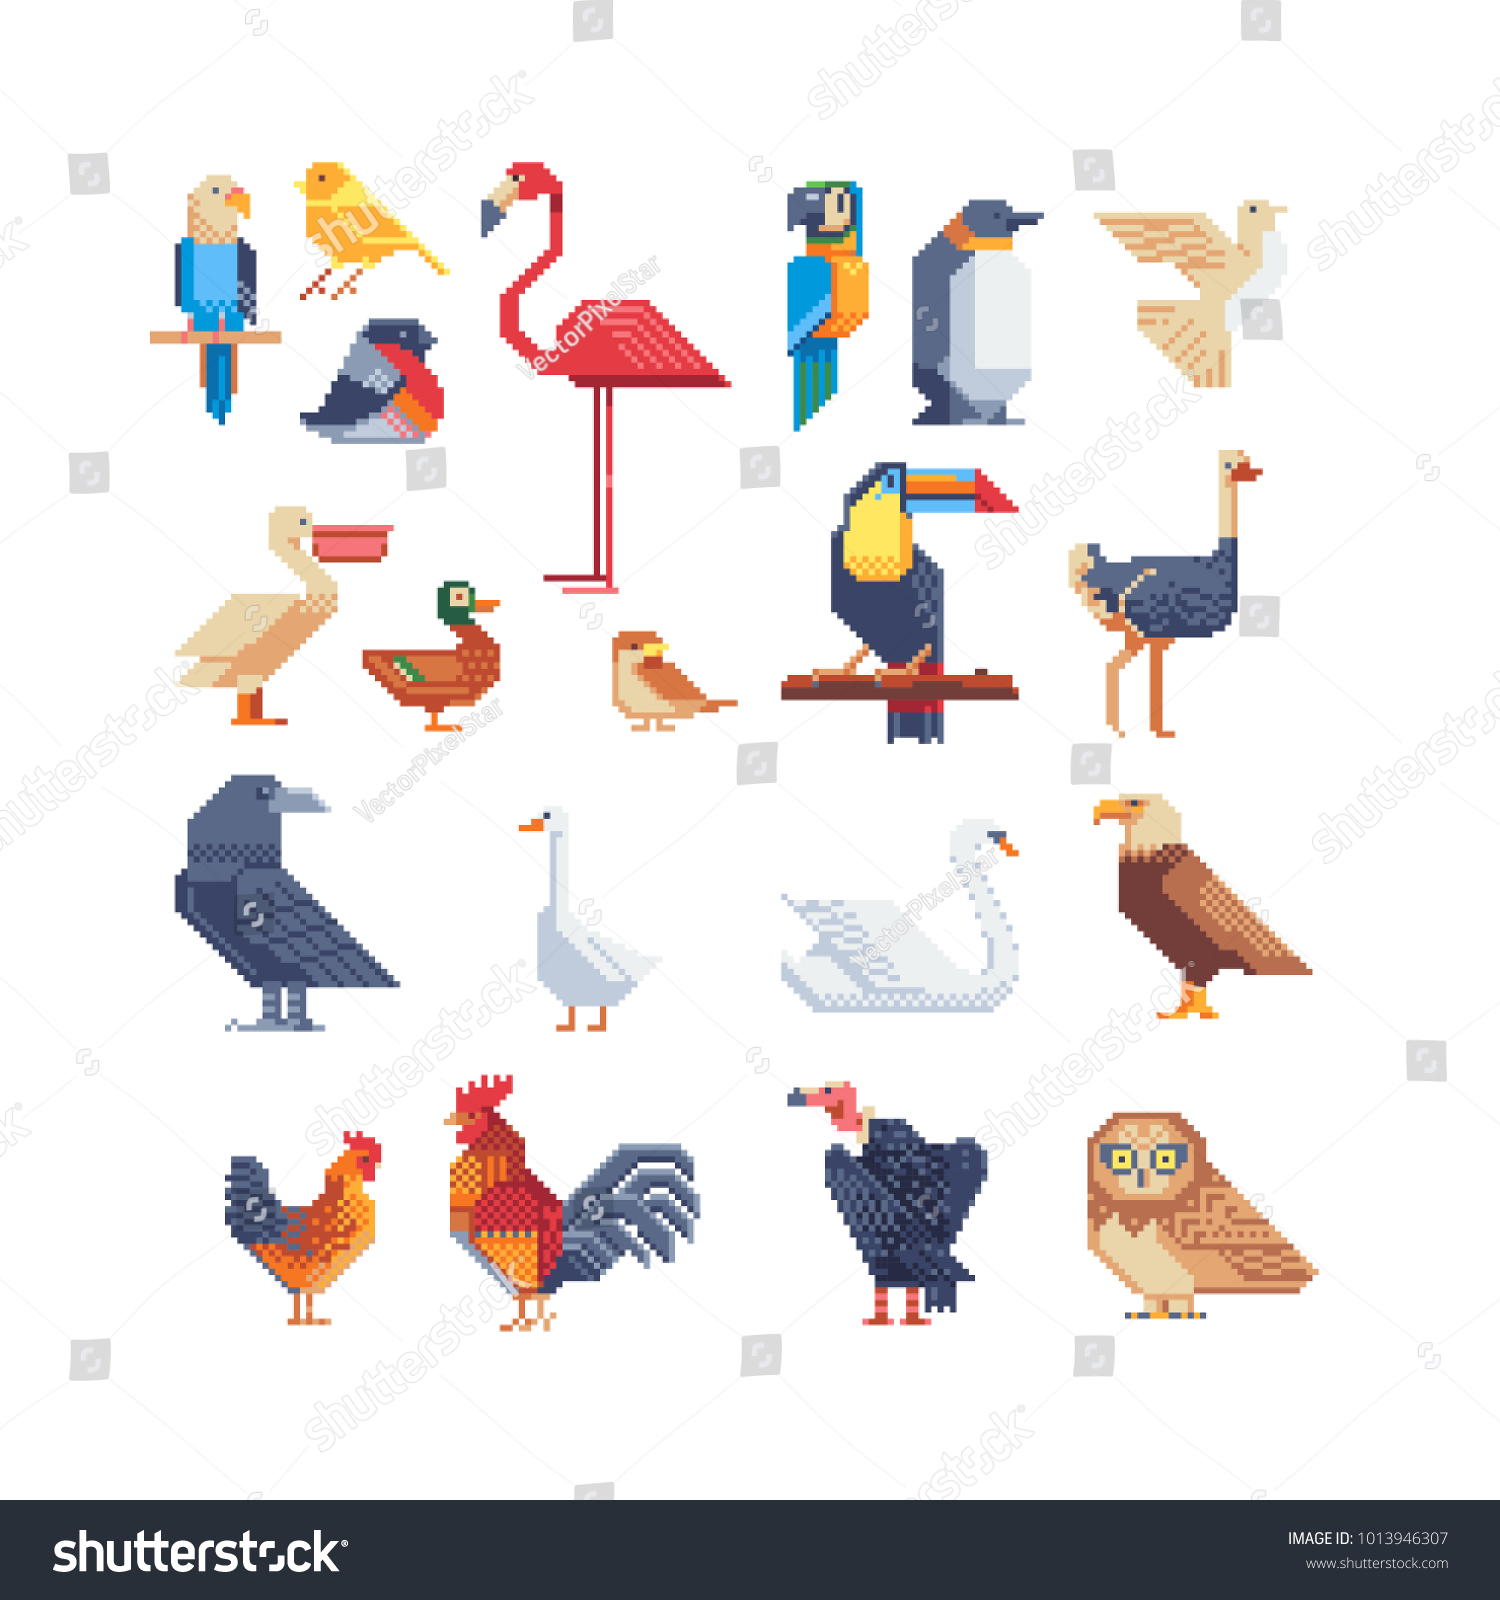 bird icons set pixel art design stock vector royalty free